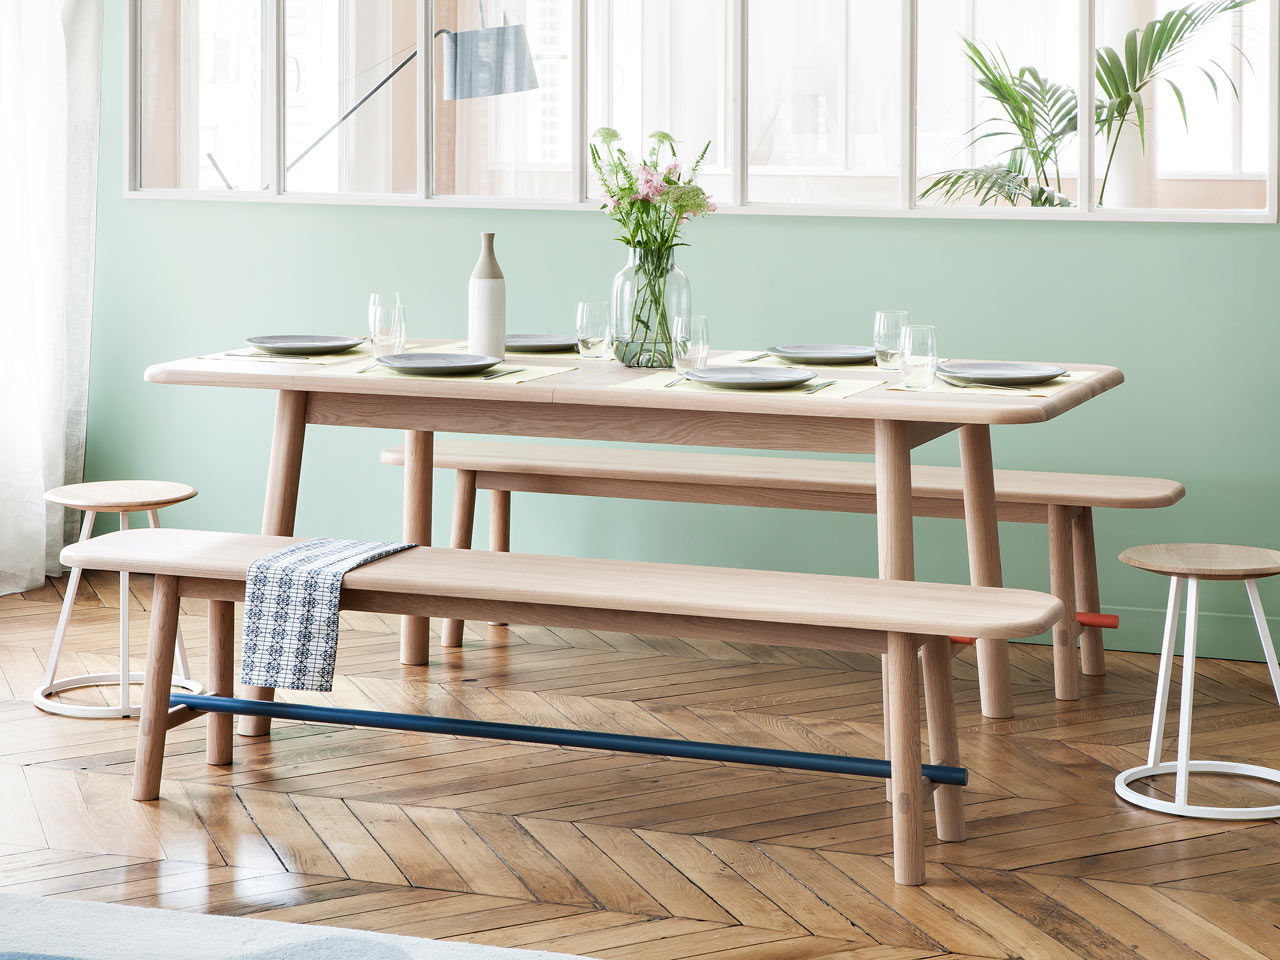 HARTÔ Launches an Expandable Table & Matching Bench